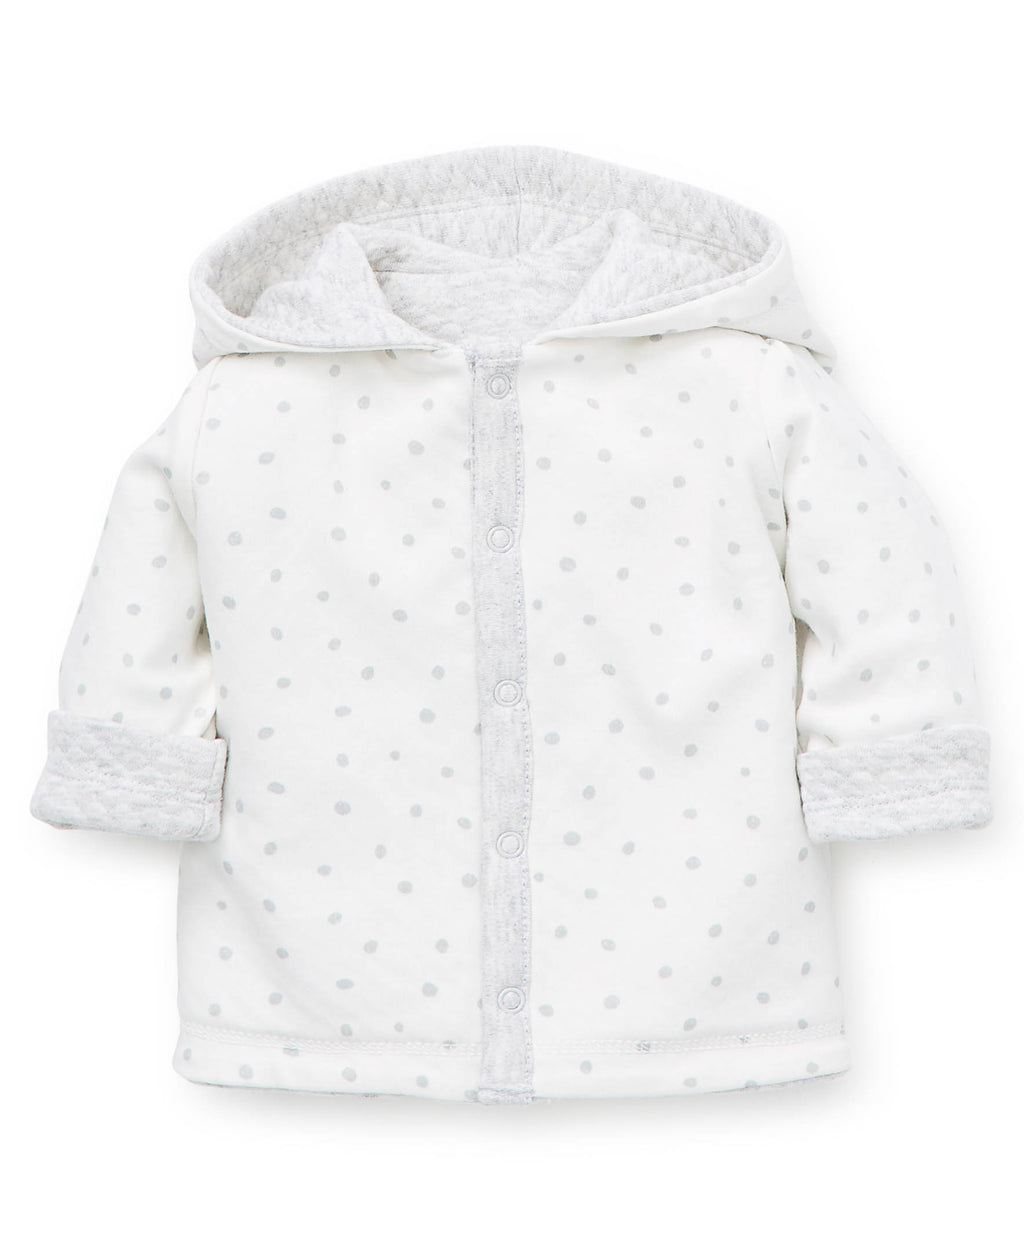 Puppy Pals Reversible Jacket